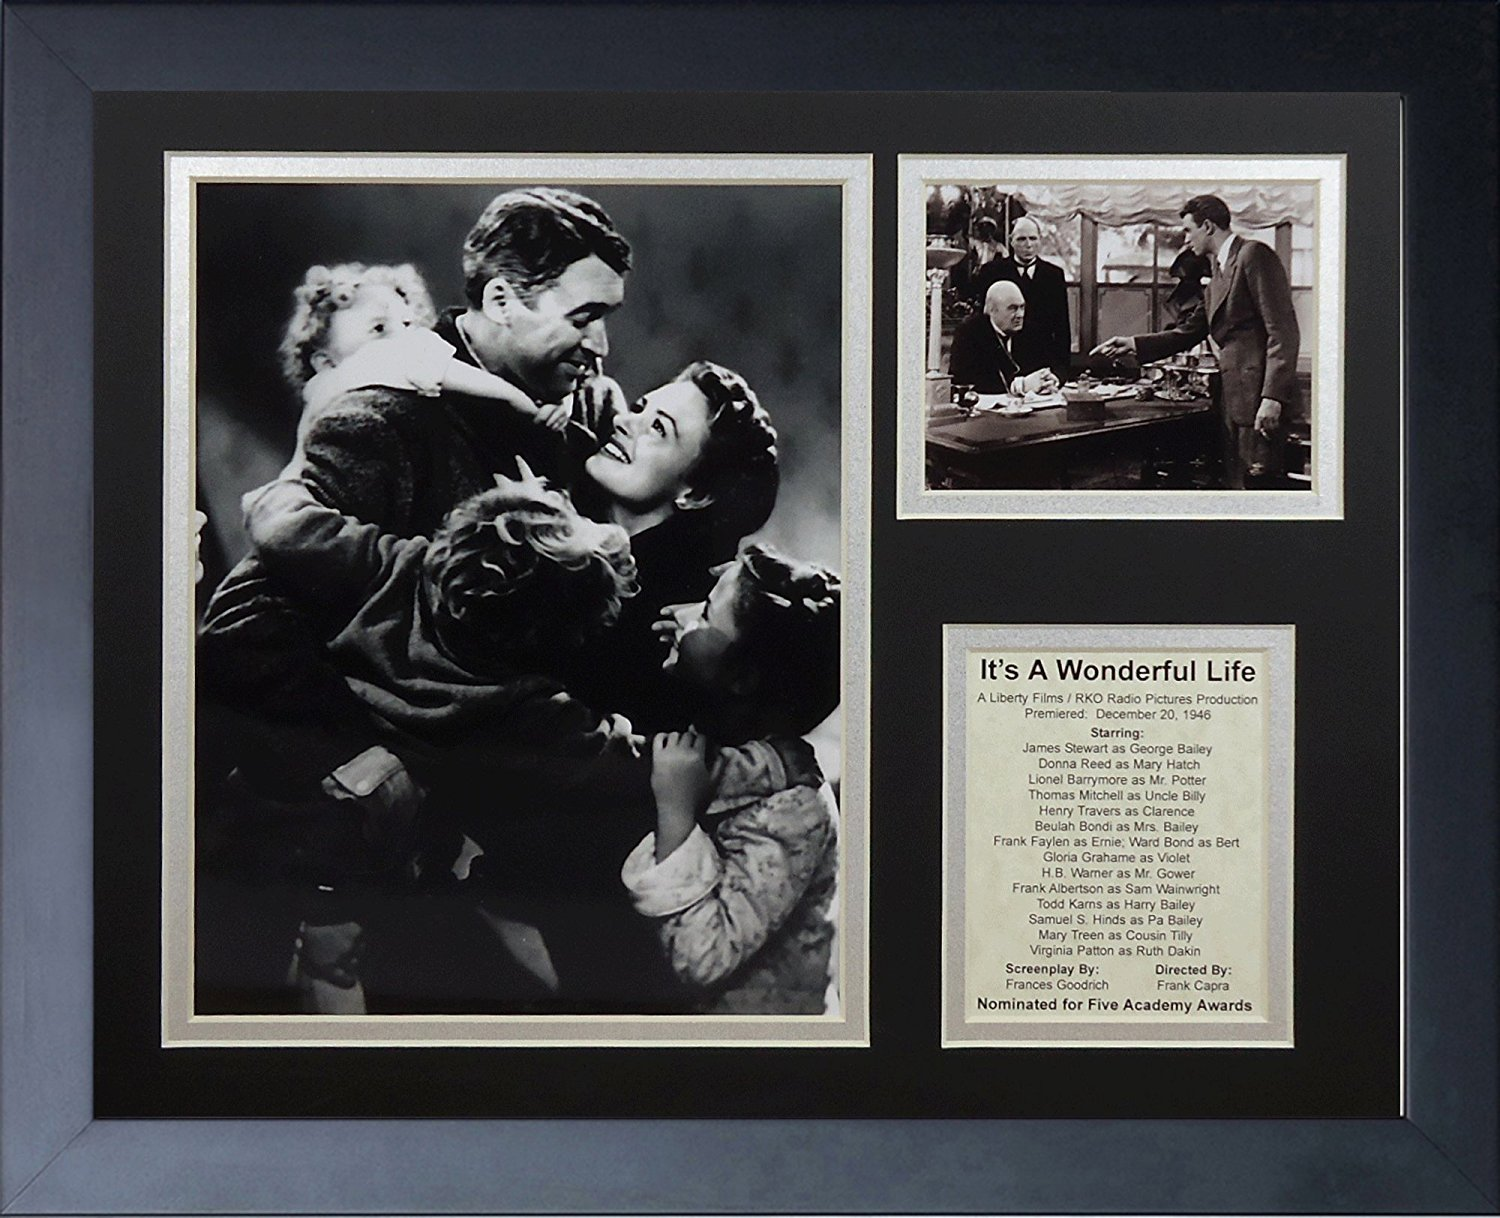 Legends Never Die It's A Wonderful Life Framed Photo Collage, 11 by 14-Inch 16143U